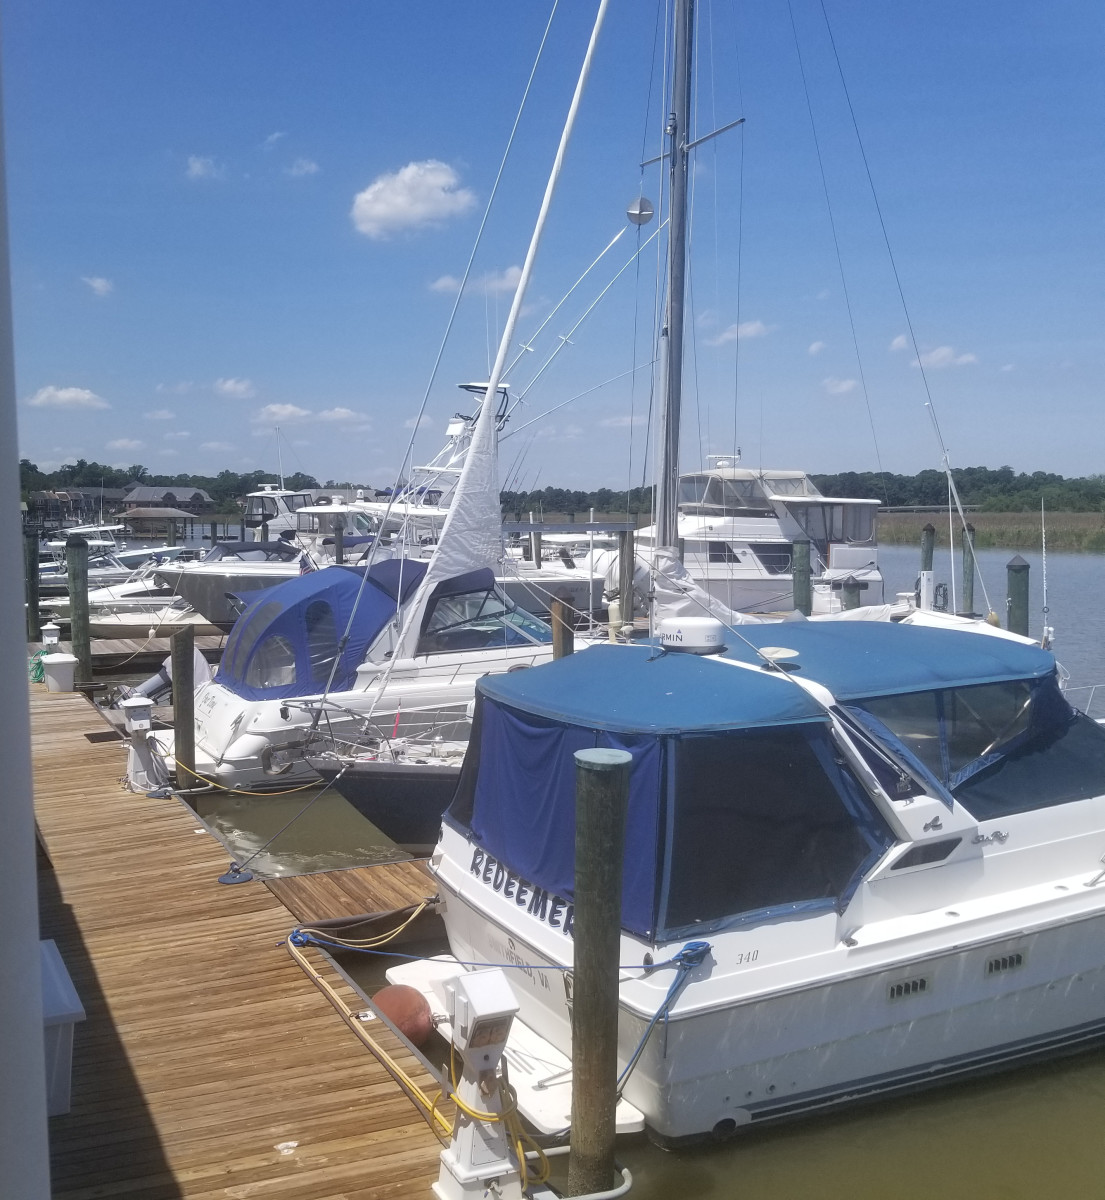 Enjoy the view of boats and the river as you dine outside at The Restaurant at Smithfield Station.